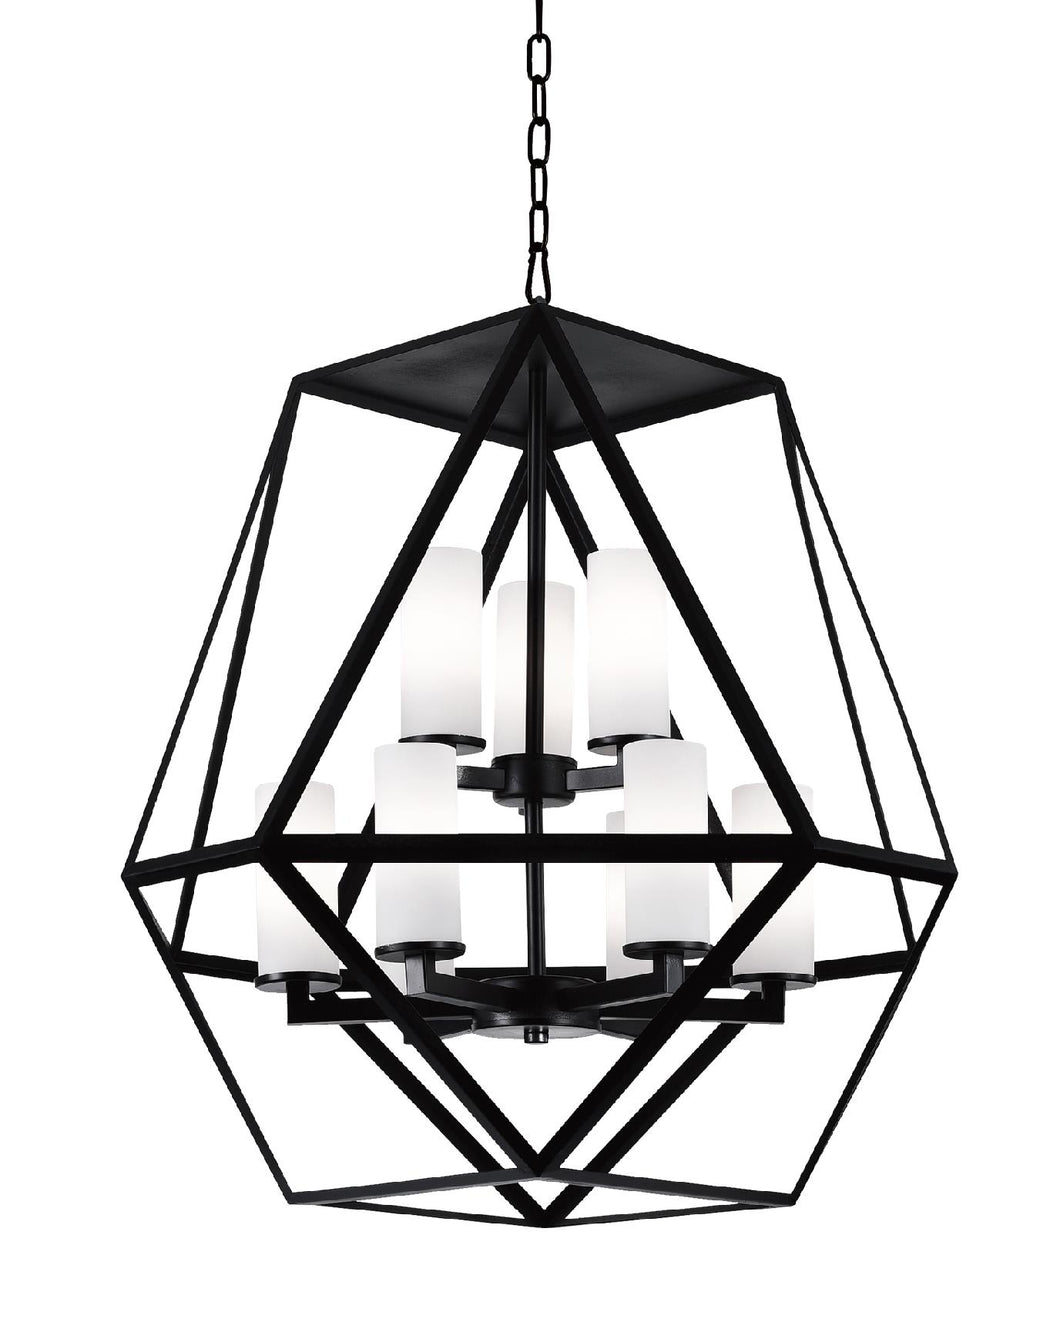 9 Light Candle Chandelier with Black finish